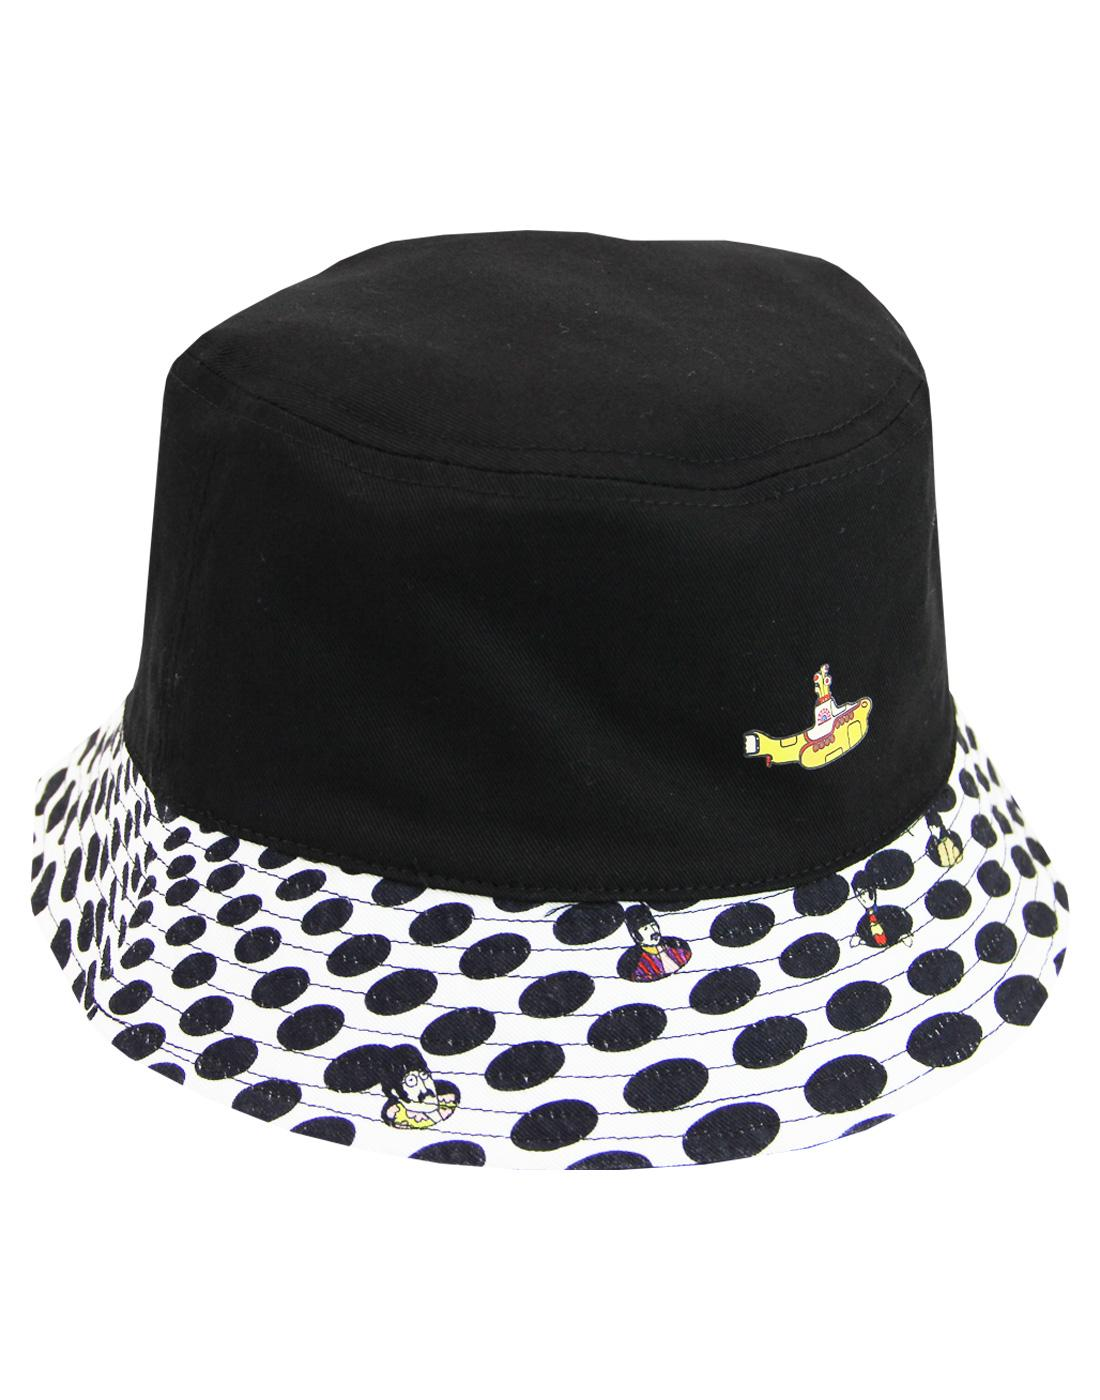 PRETTY GREEN x THE BEATLES Sea Of Holes Bucket Hat